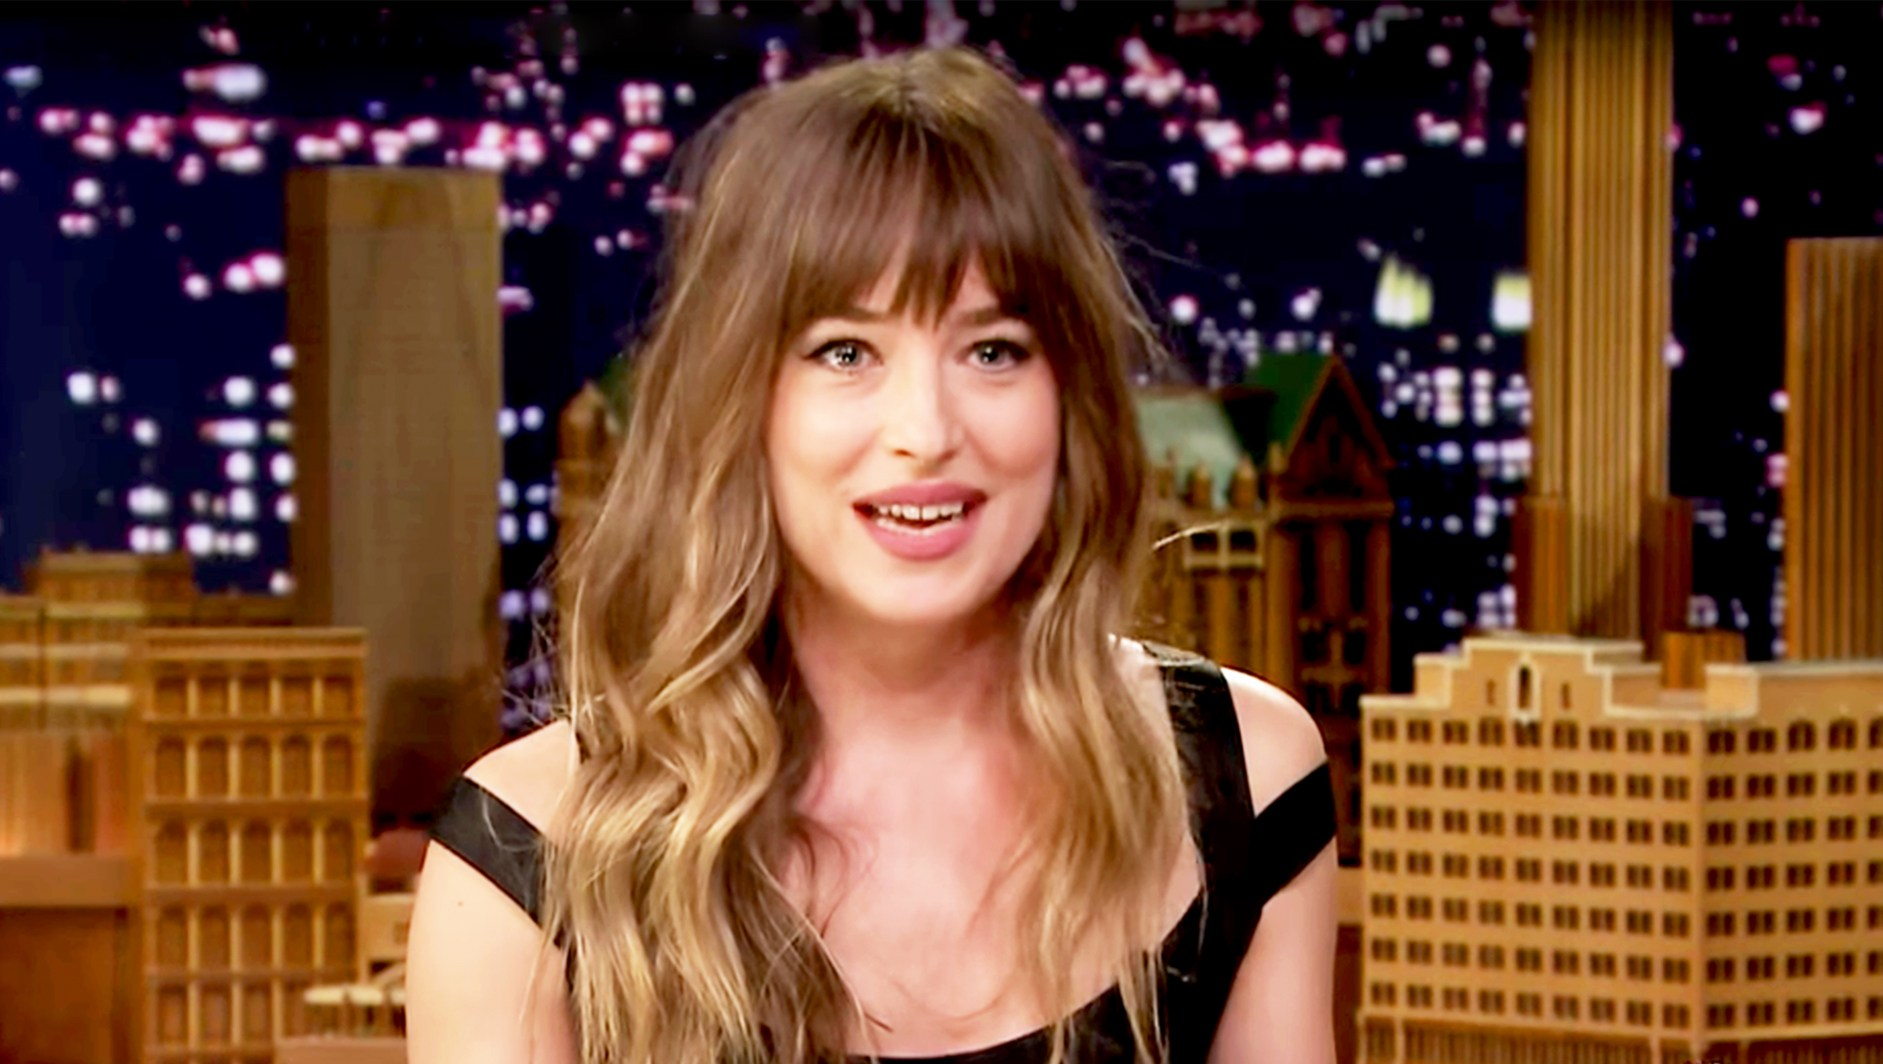 Dakota Johnson on 'The Tonight Show starring Jimmy Fallon'